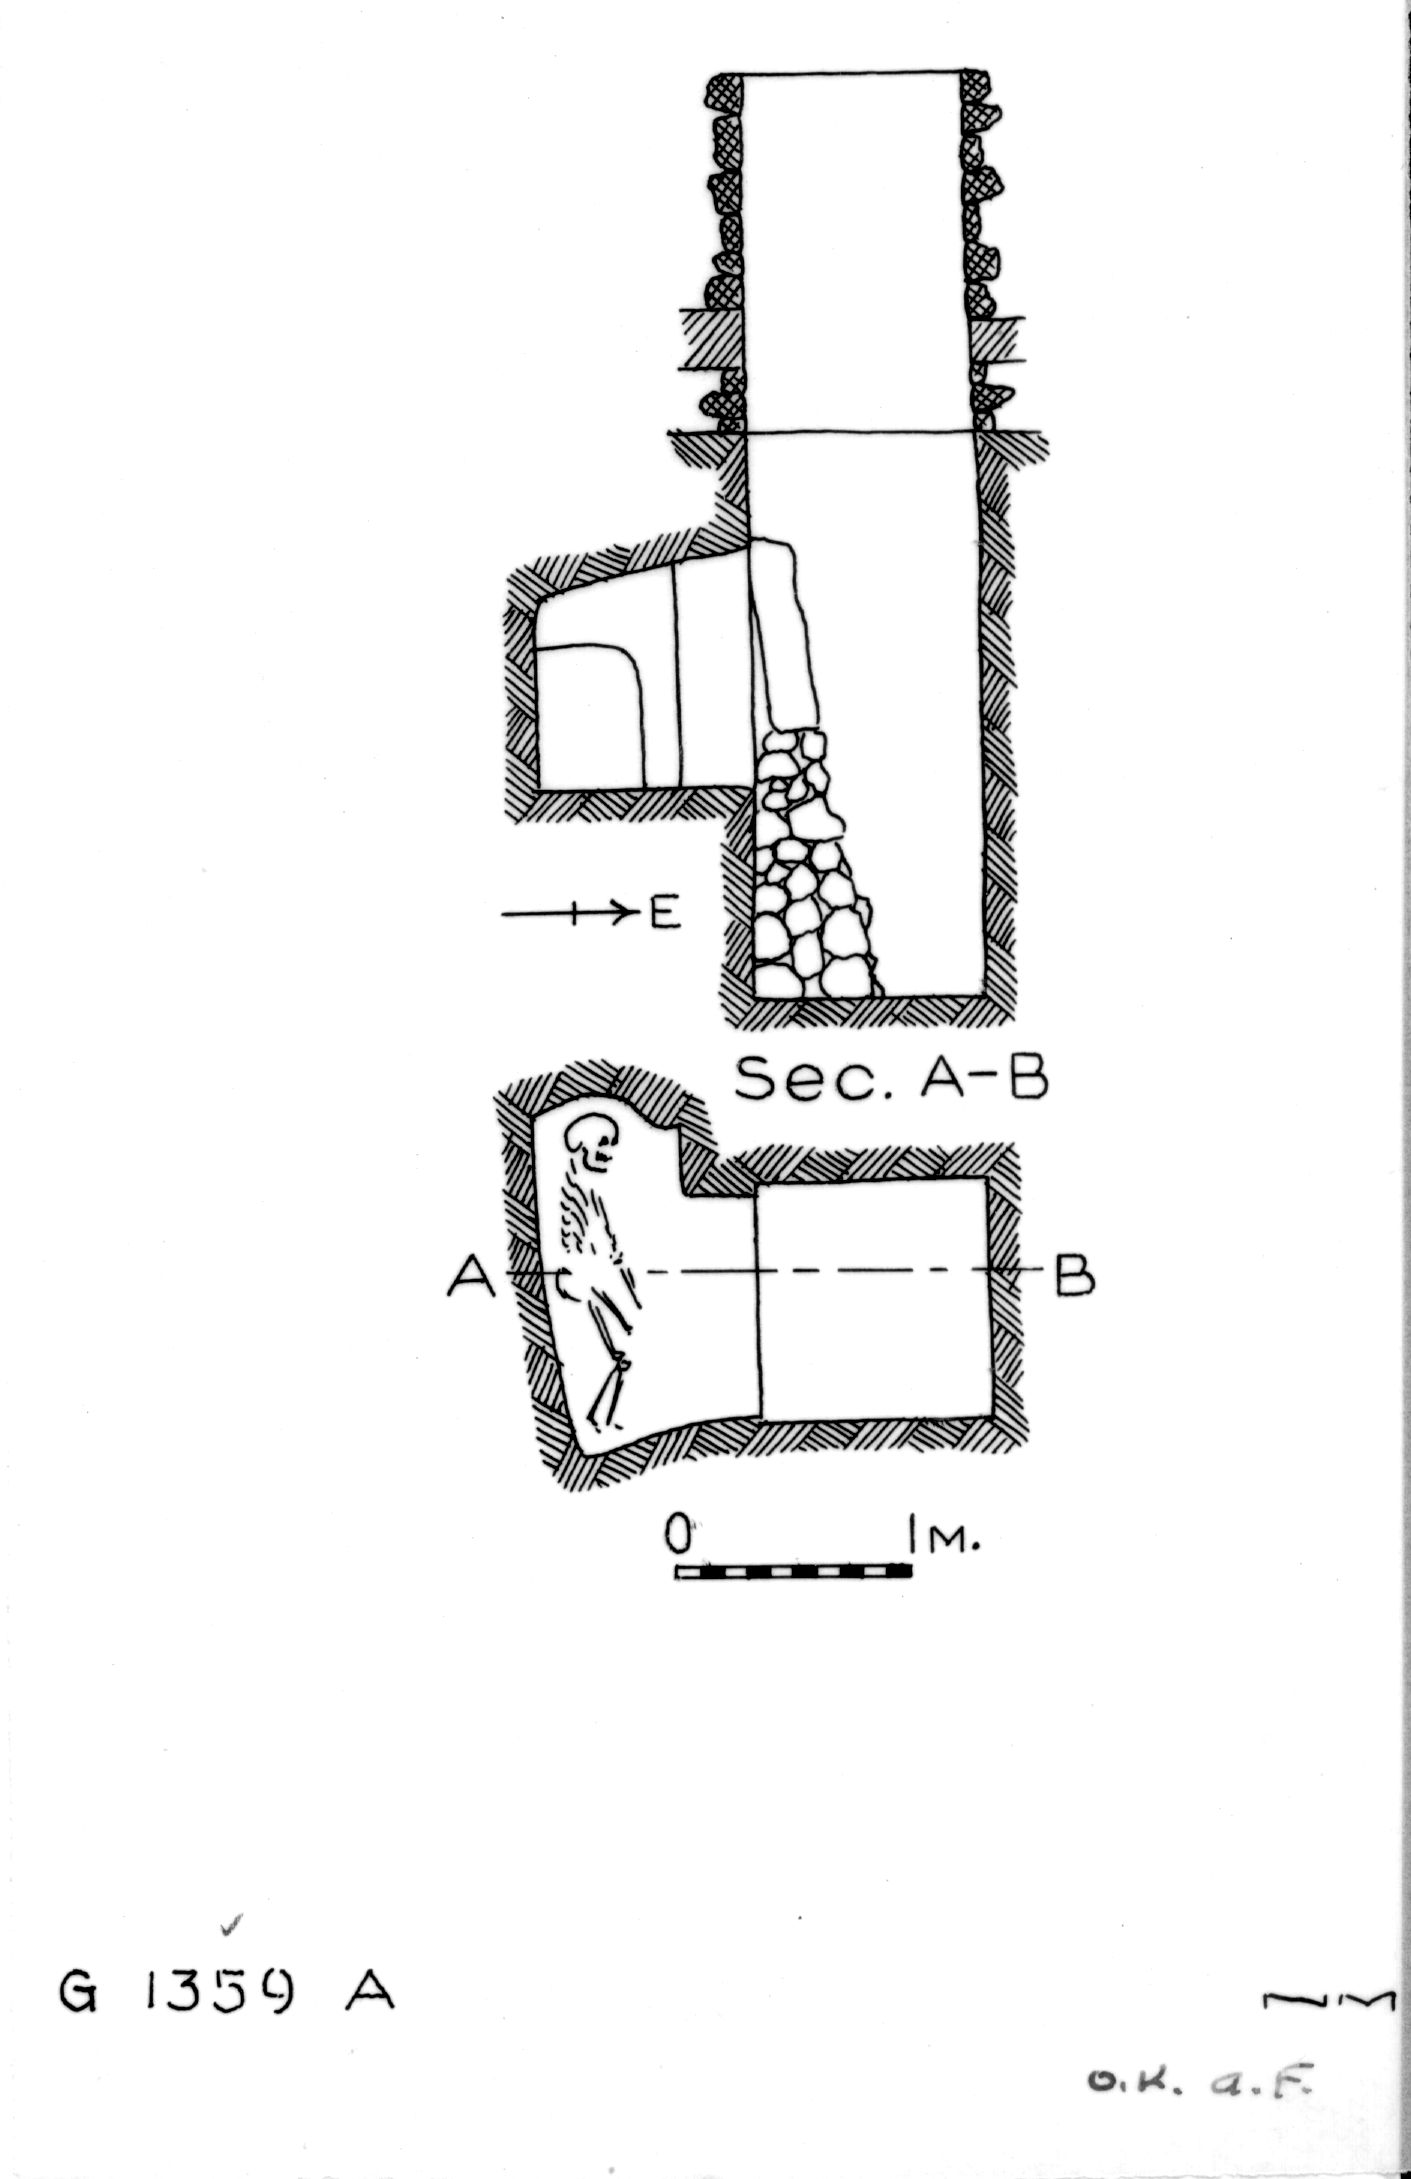 Maps and plans: G 1359, Shaft A